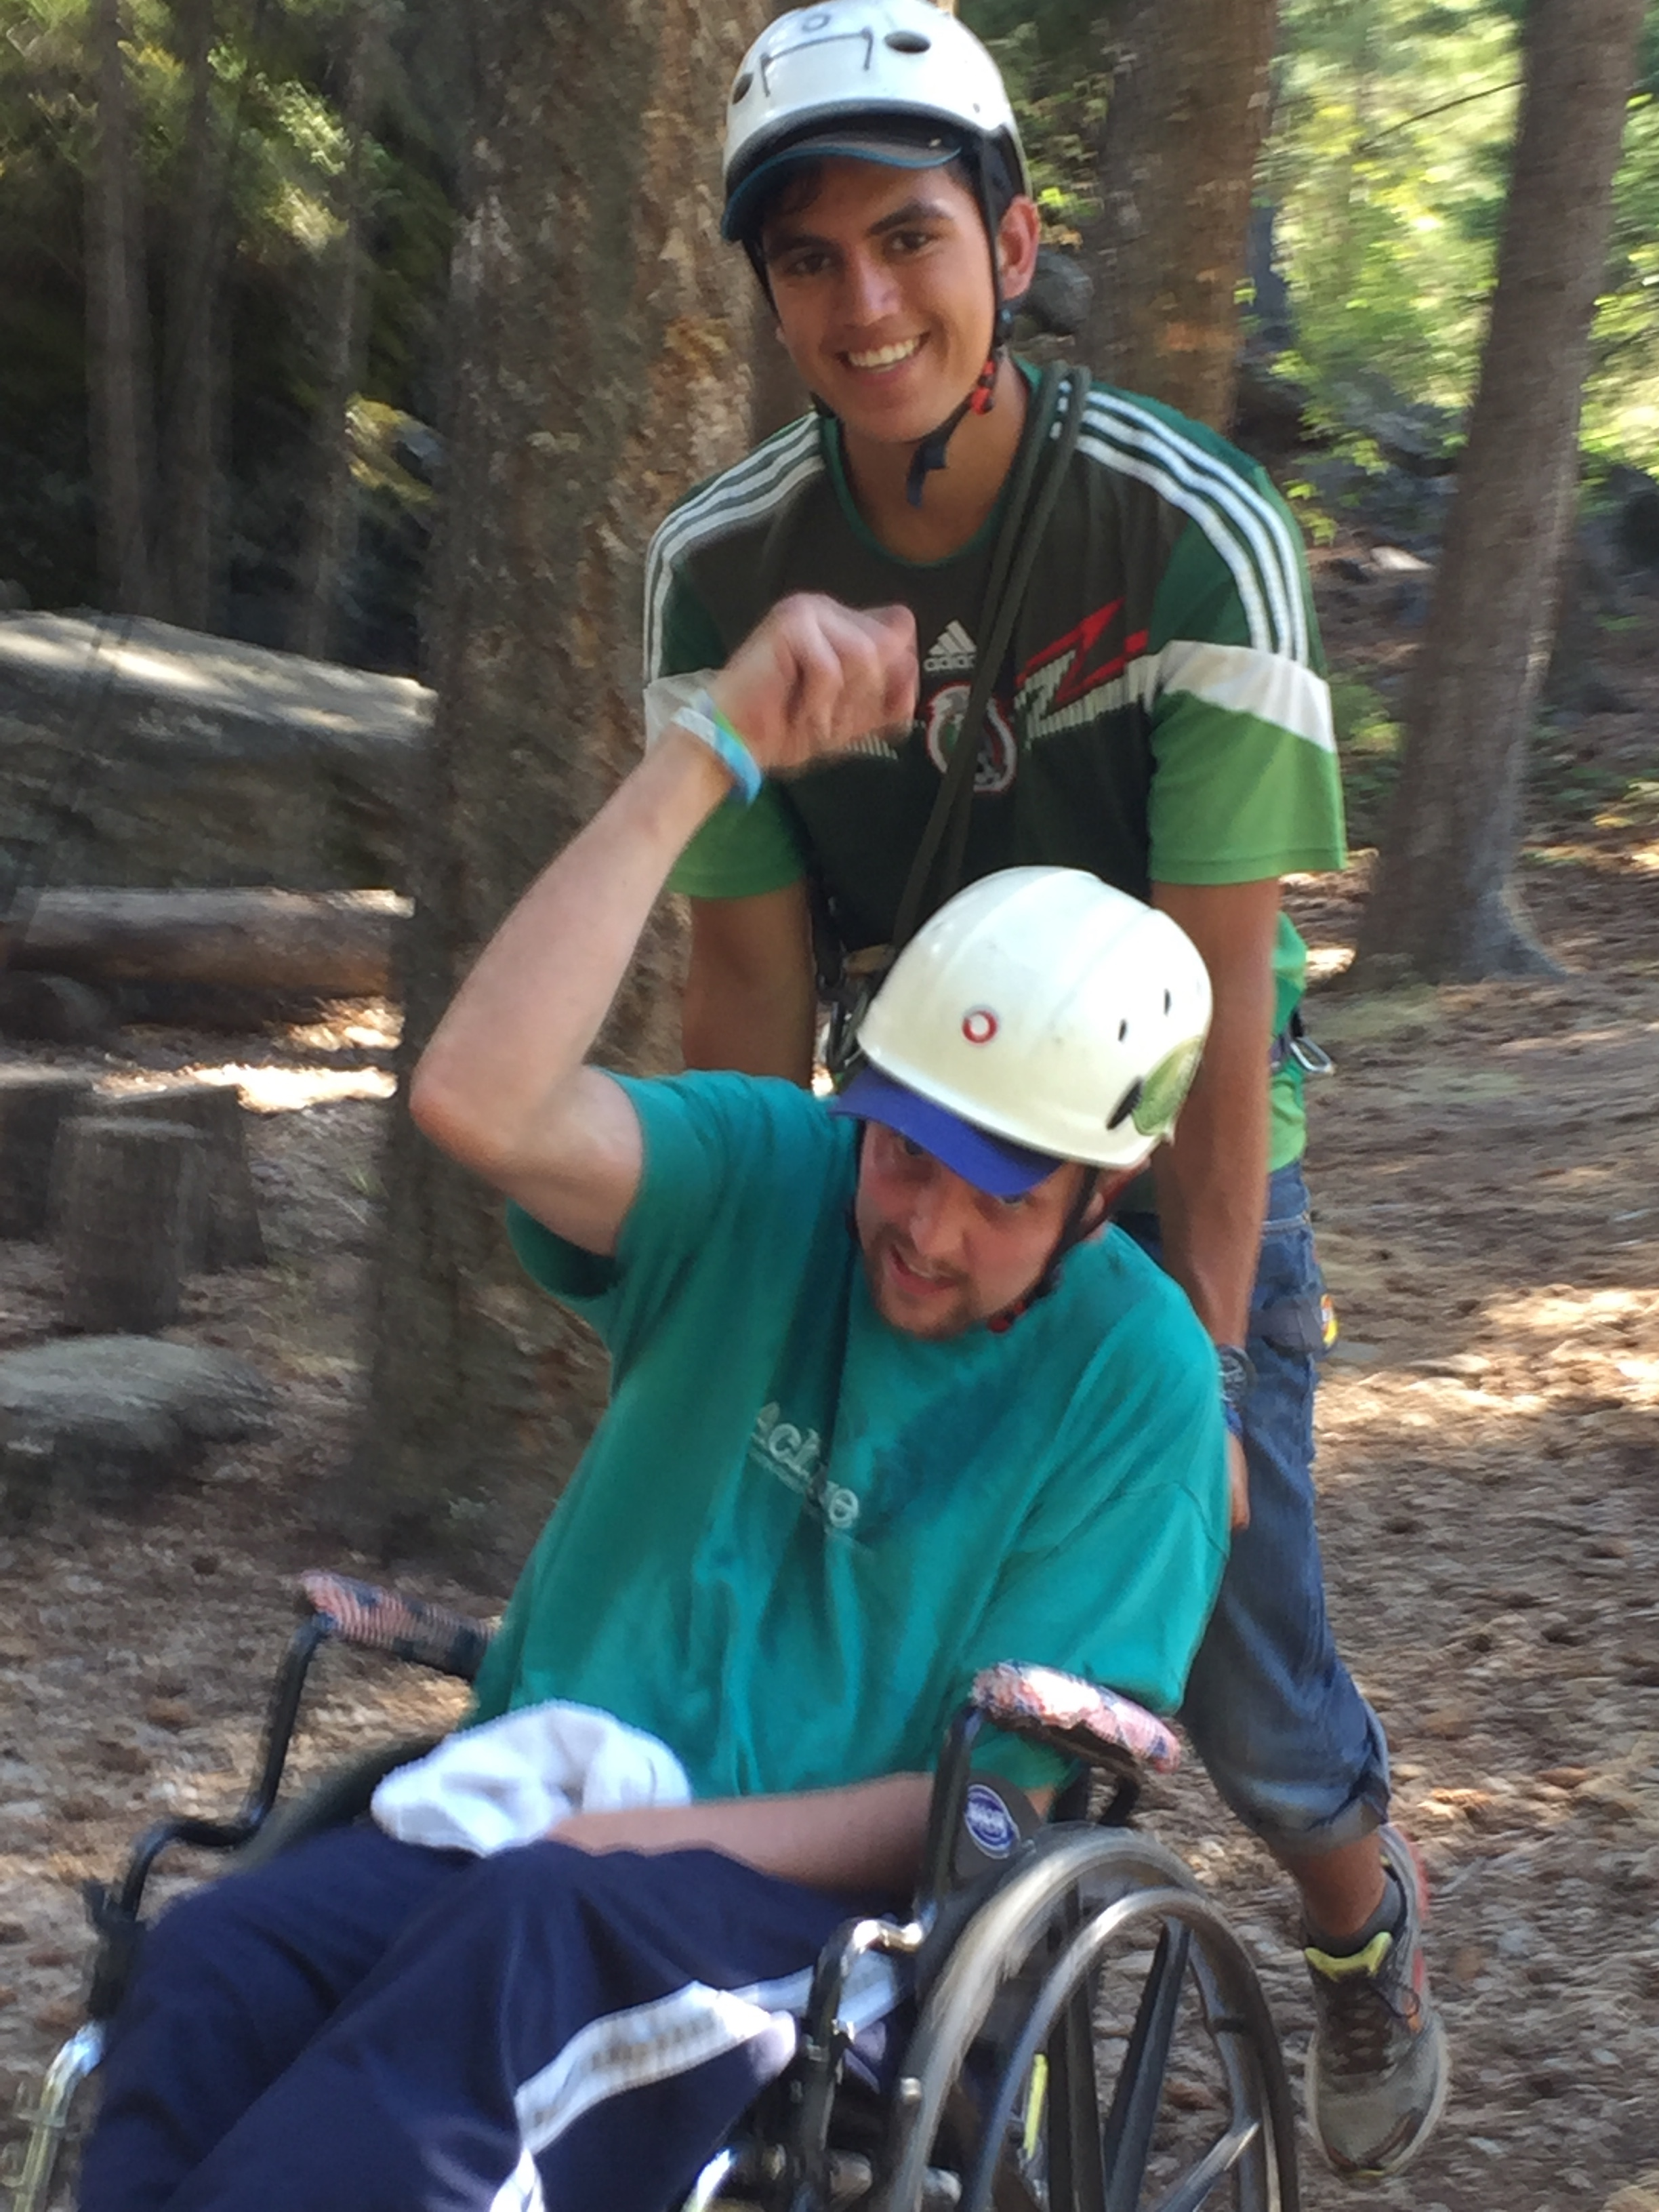 Justin survived a severe brain injury as a teenager, but that didn't stop him from also completing the ropes course with the help of his buddy Ben! It was amazing to witness these brave campers go out and achieve their dreams!